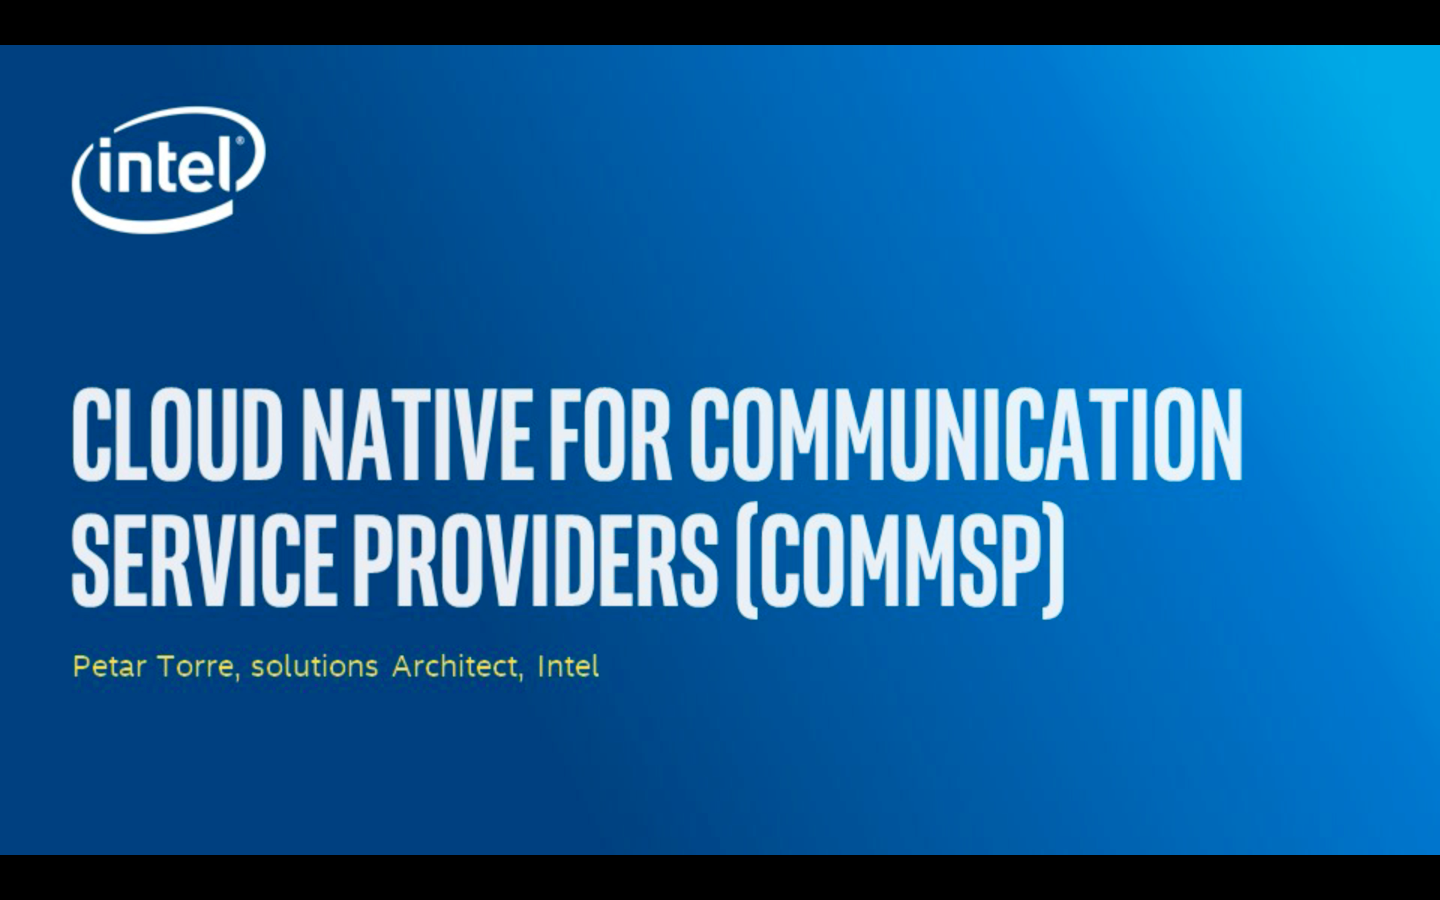 Chapter 1: Cloud Native for Communication Service Providers